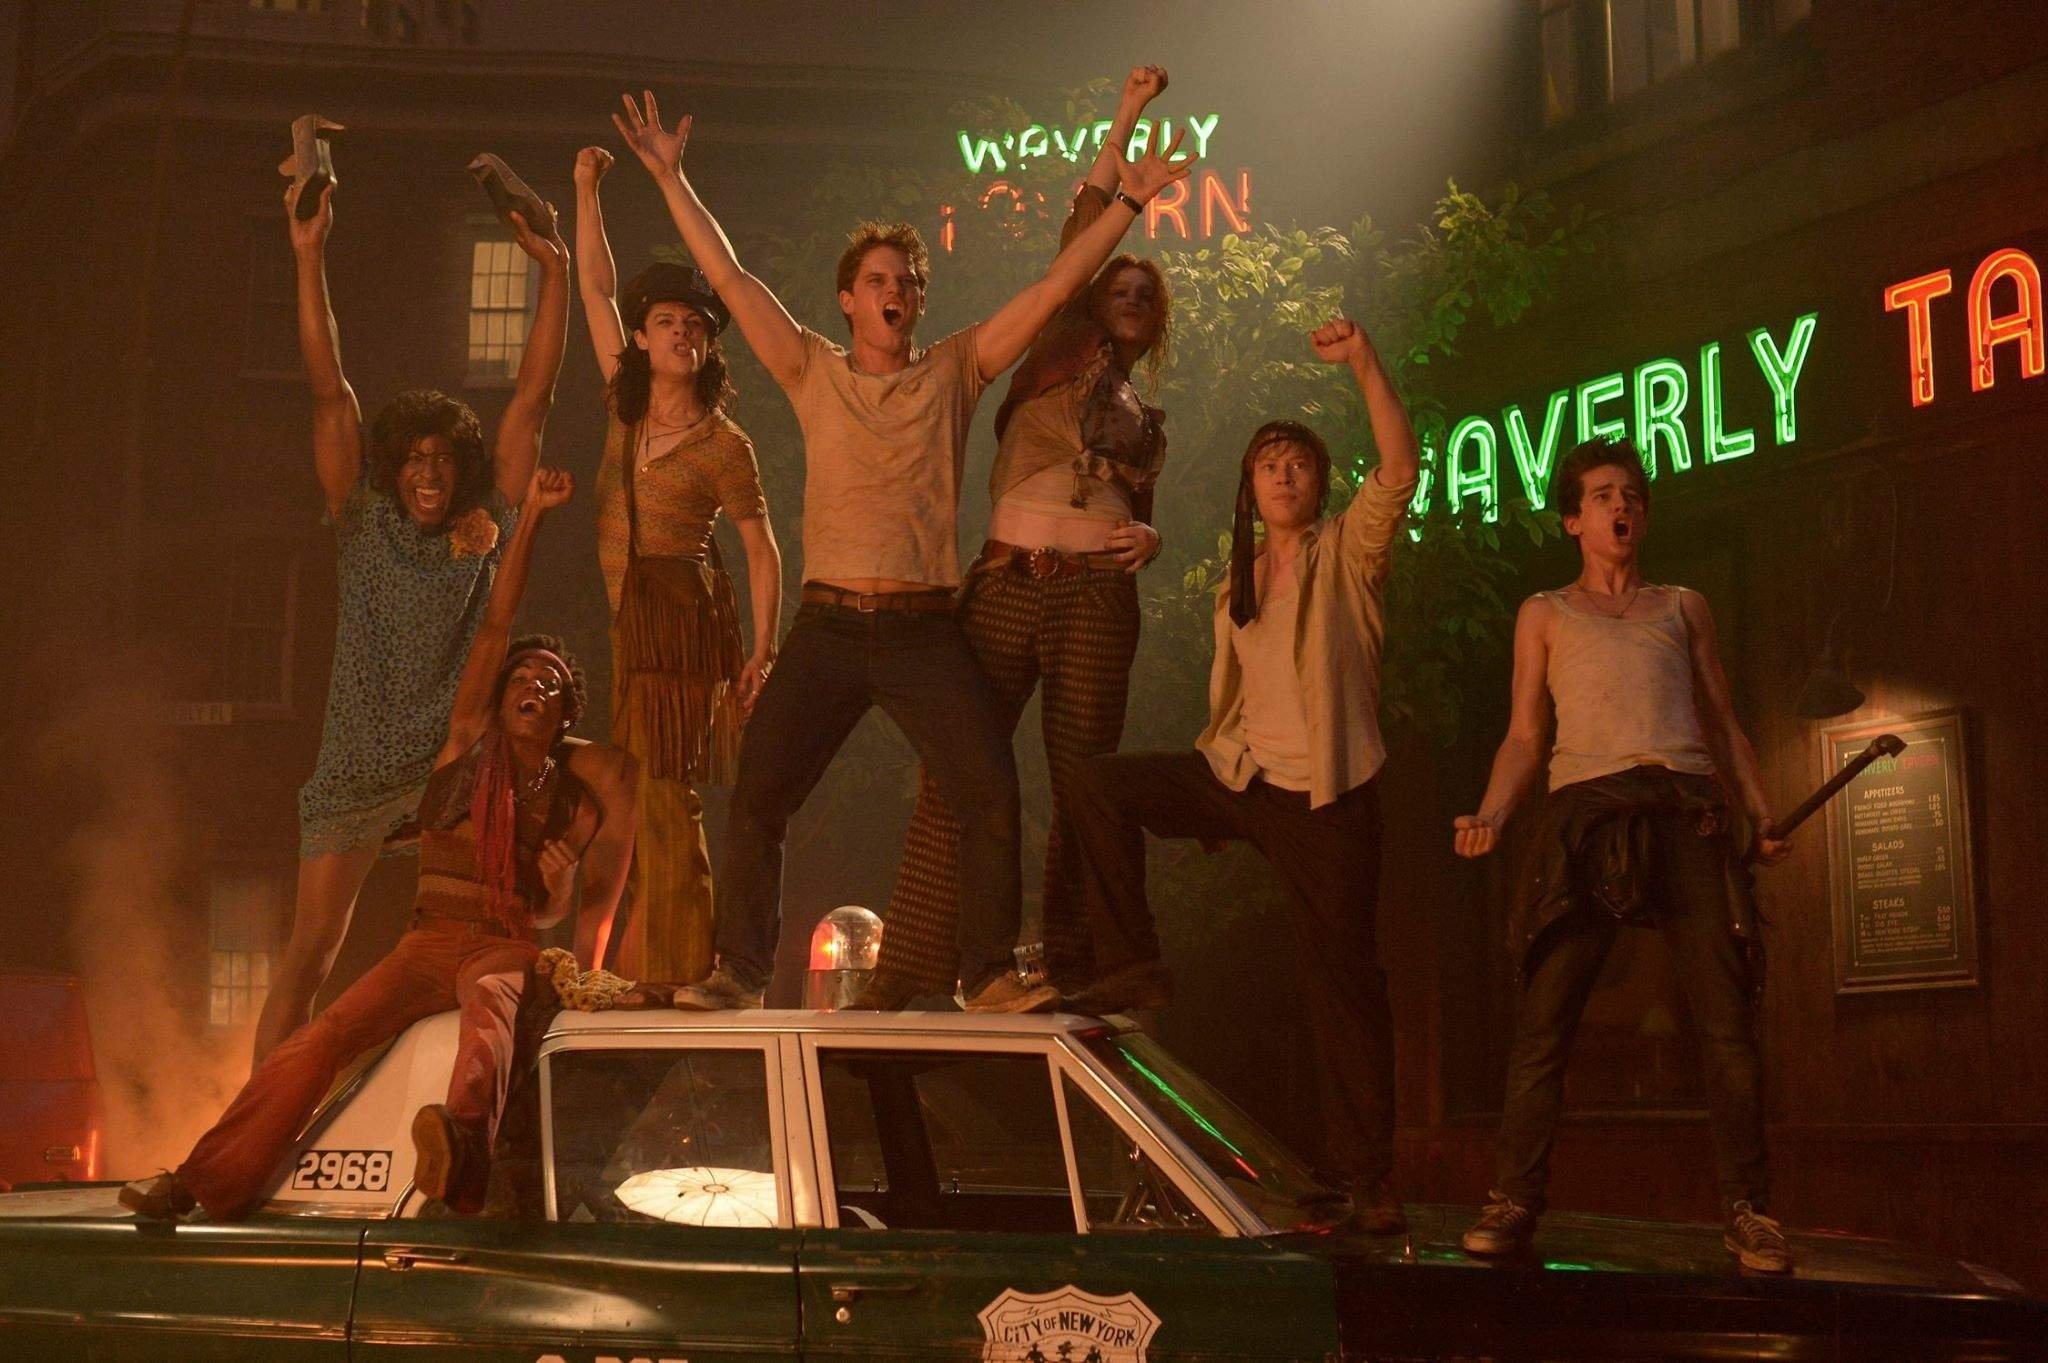 Stonewall Films 'Based On A True Story' That Completely Lied To Us